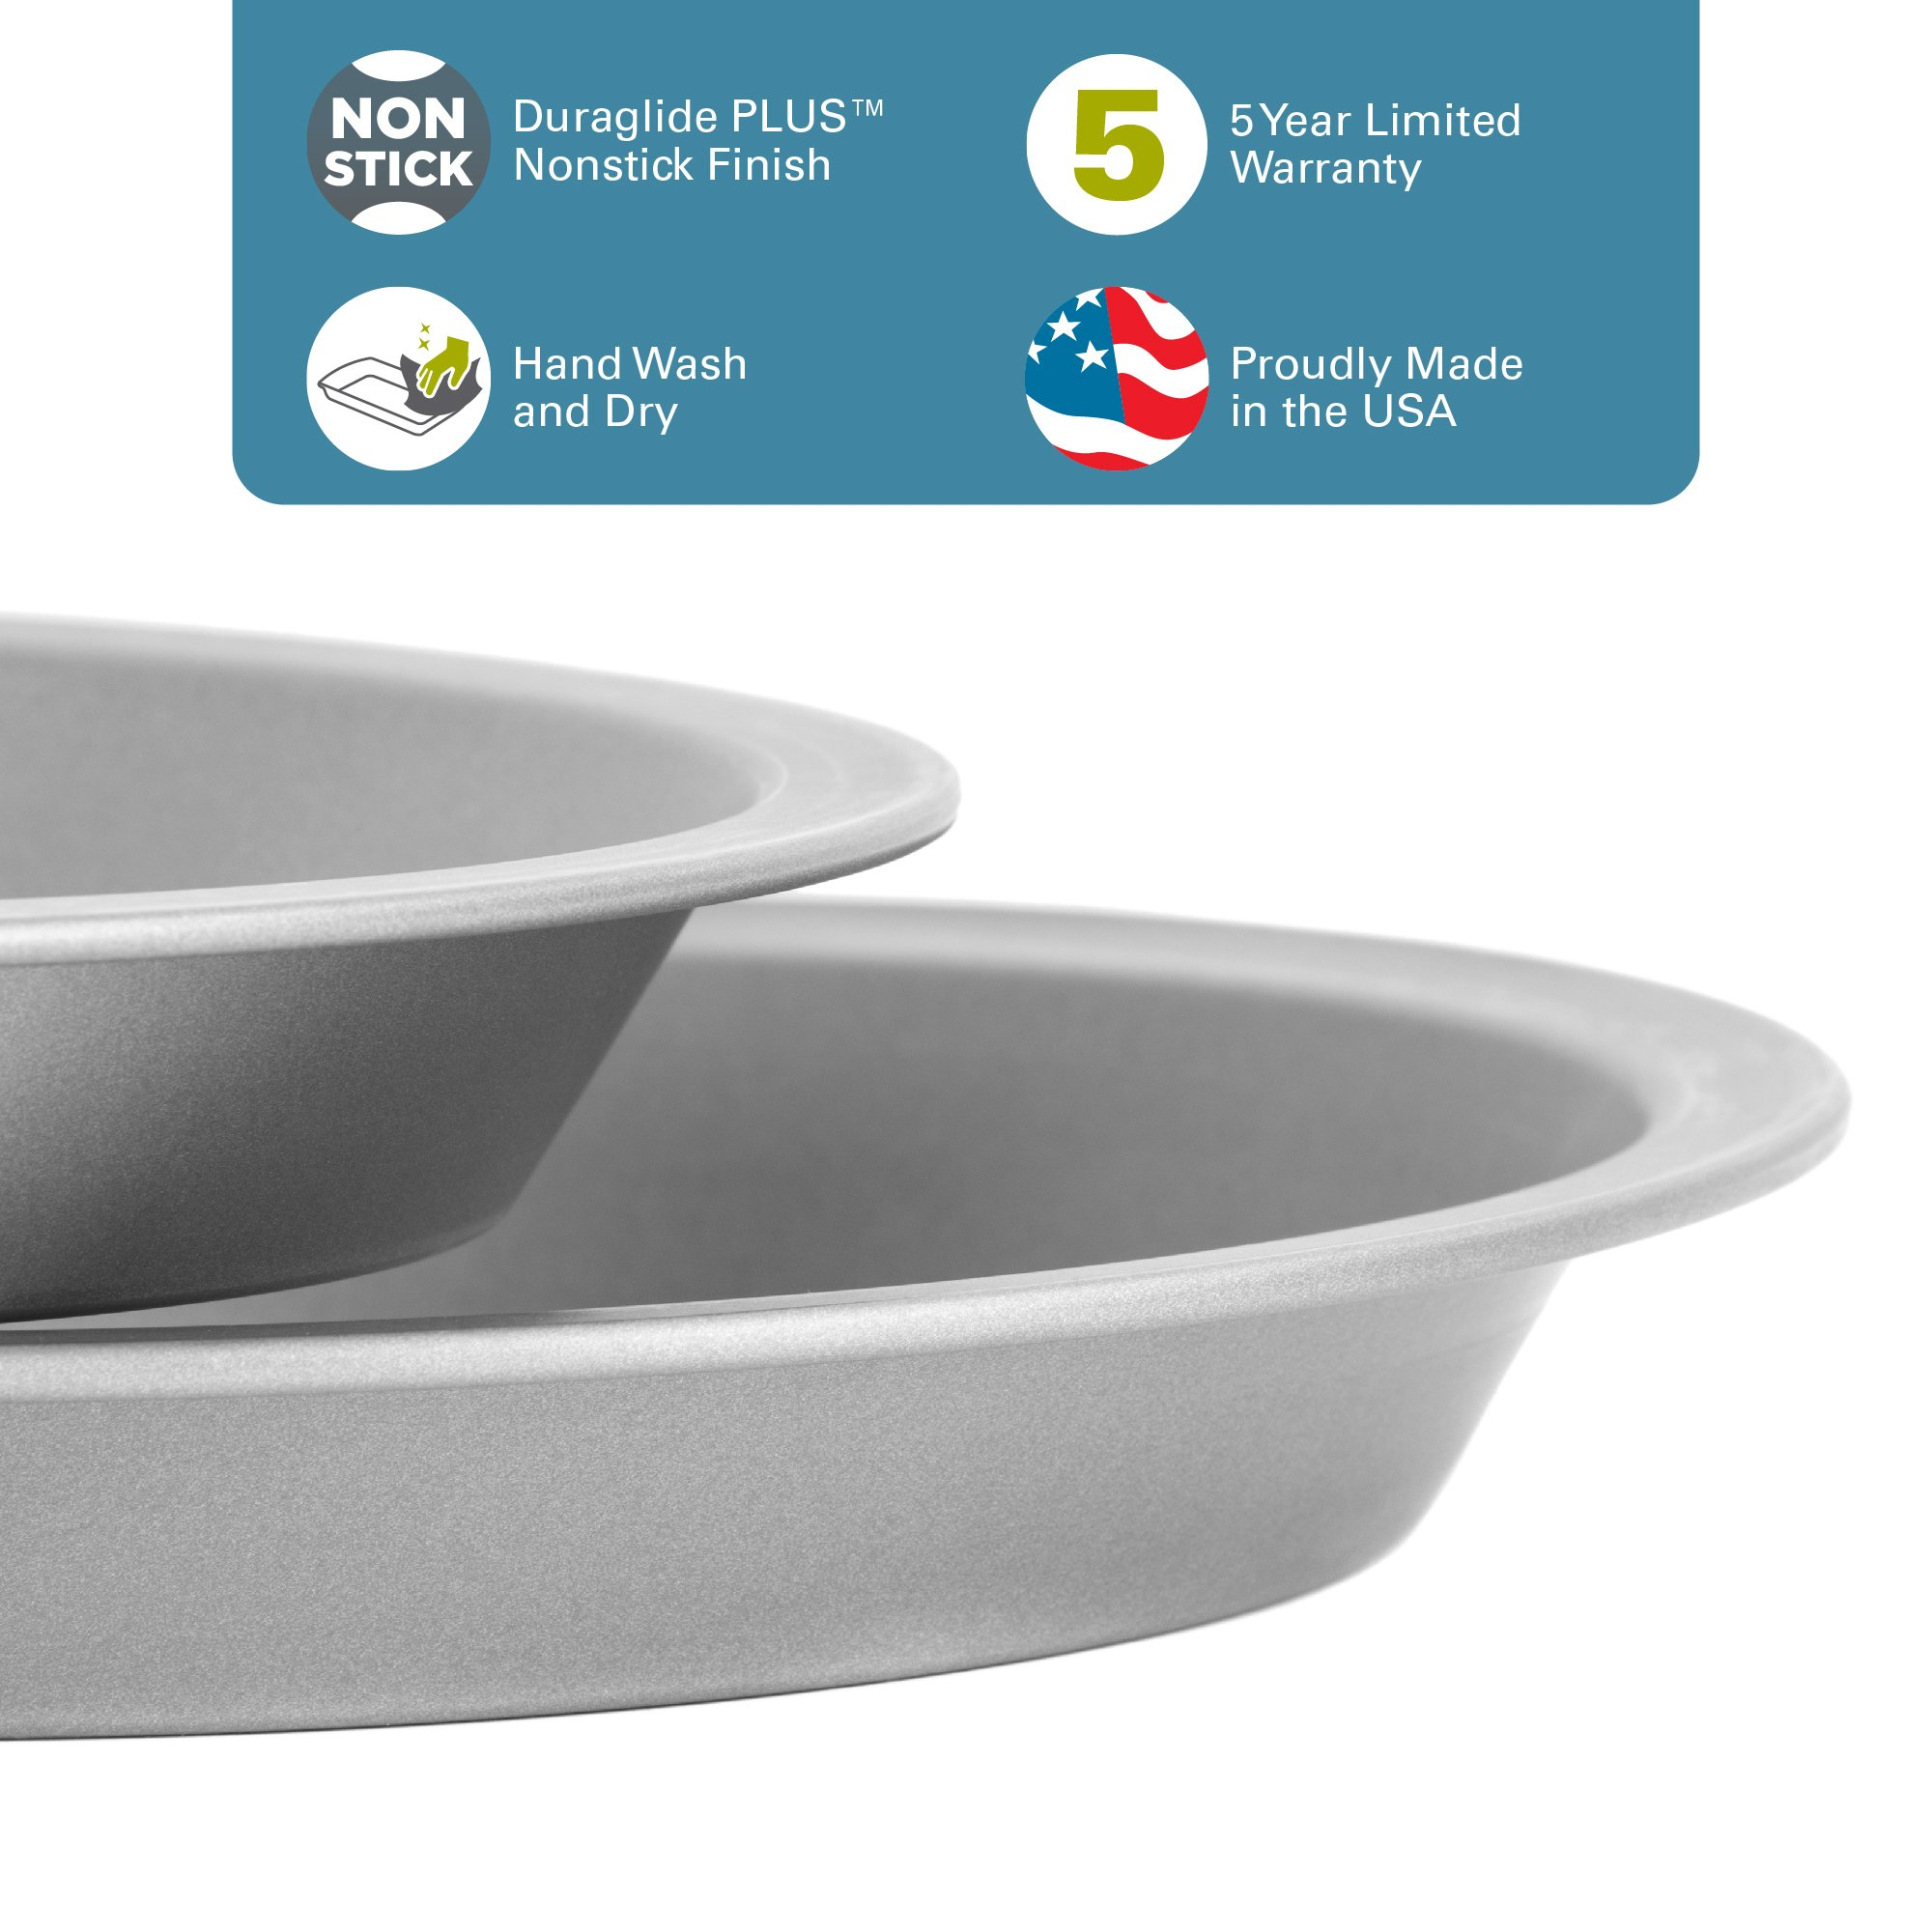 """OvenStuff Non-Stick 9"""" Pie Pans, Set of Two - American-Made, Non-Stick Pie Baking Pan Set, Easy to Clean by G & S Metal Products Company (Image #3)"""